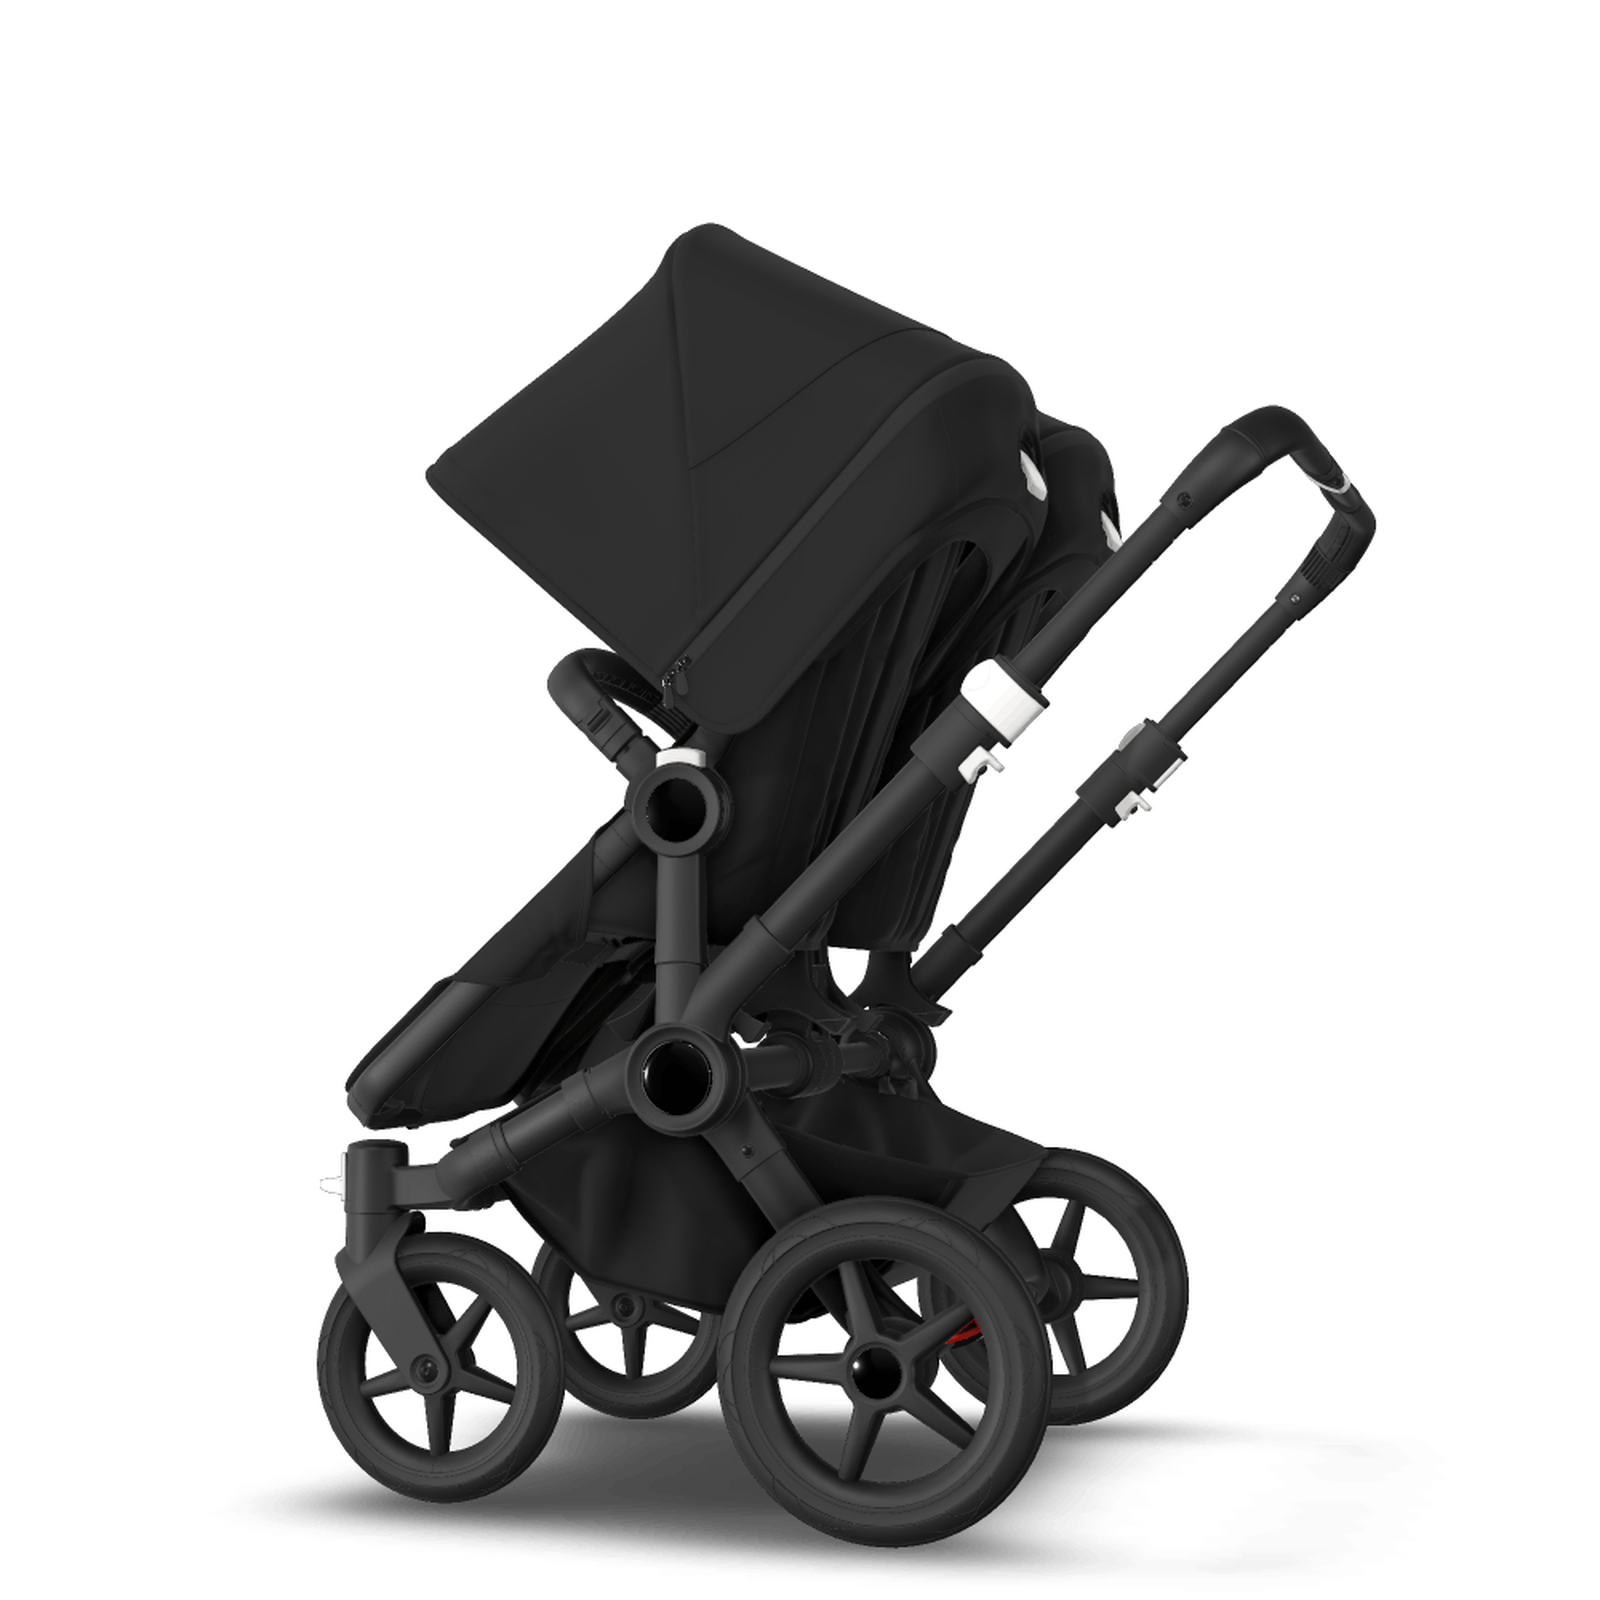 Bugaboo Donkey 3 Twin seat and bassinet pram